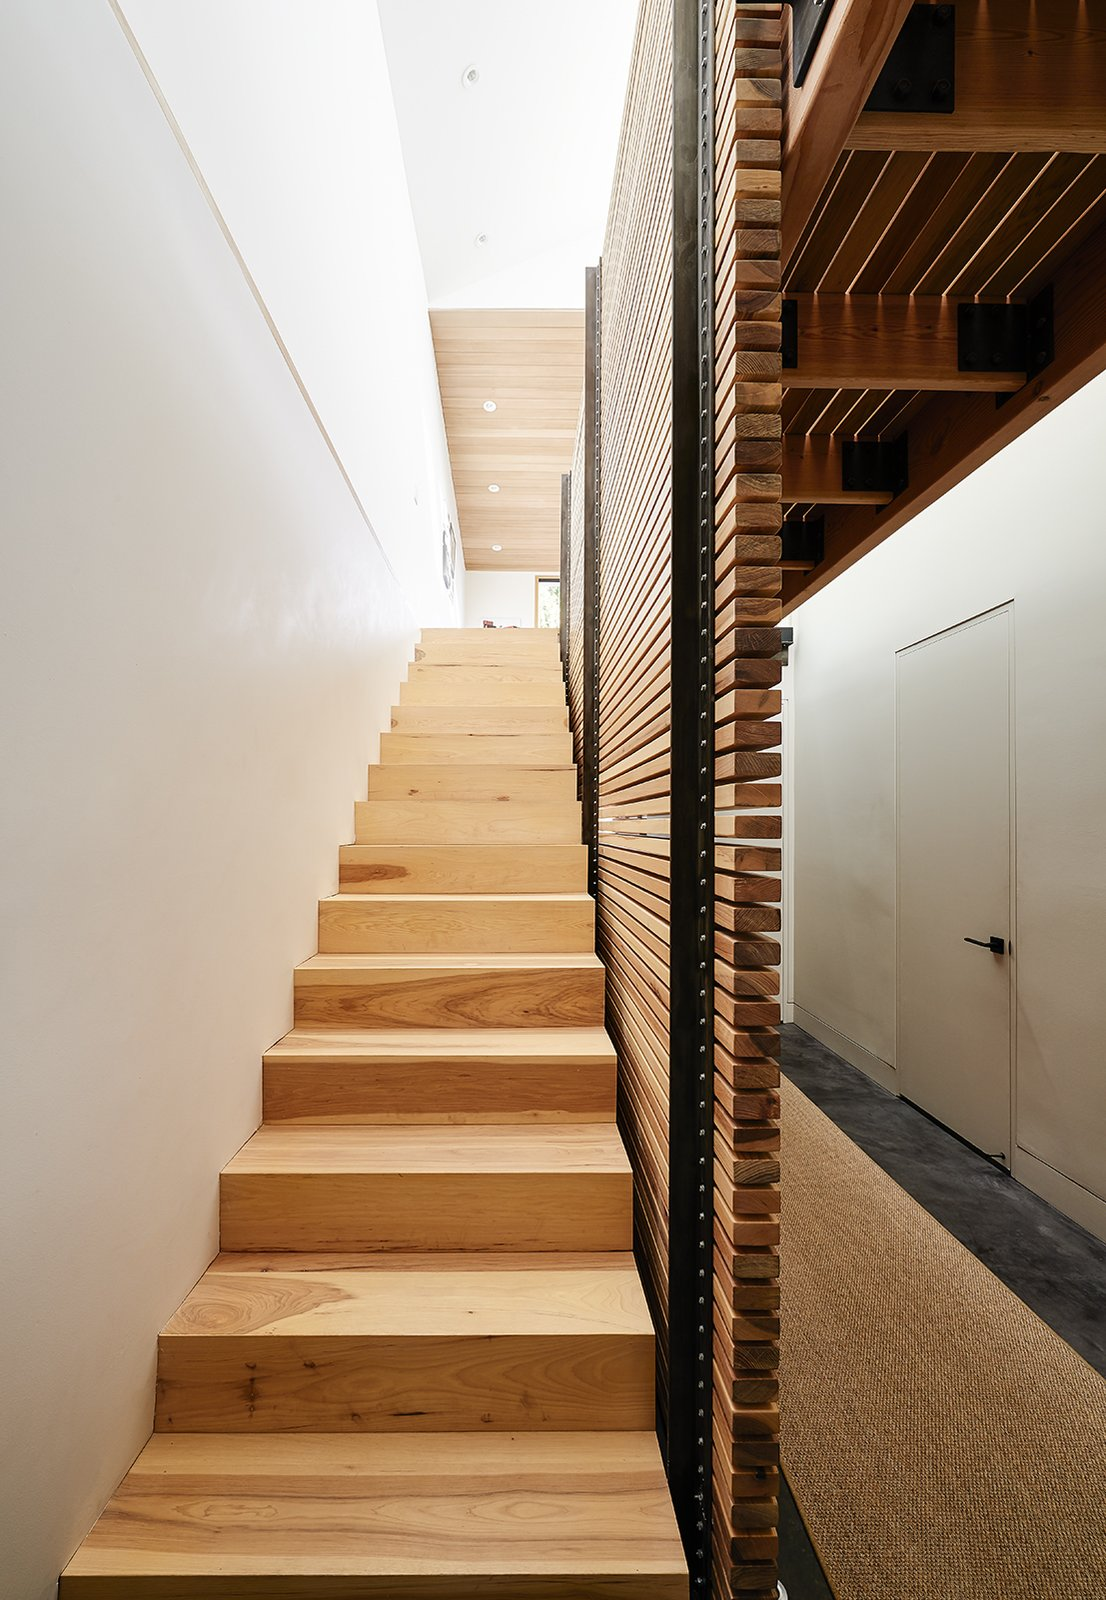 Wood Tread and Exterior By eliminating the attic and carving out a former crawl space, Red Dot Studio created room for the residents' bedrooms underneath the primary living areas. The slatted-hickory-and-glass bridge allows light from a row of skylights to penetrate deep into the lower level.  Photo 4 of 9 in A Renovated Tiny Victorian with 21st-Century Interiors